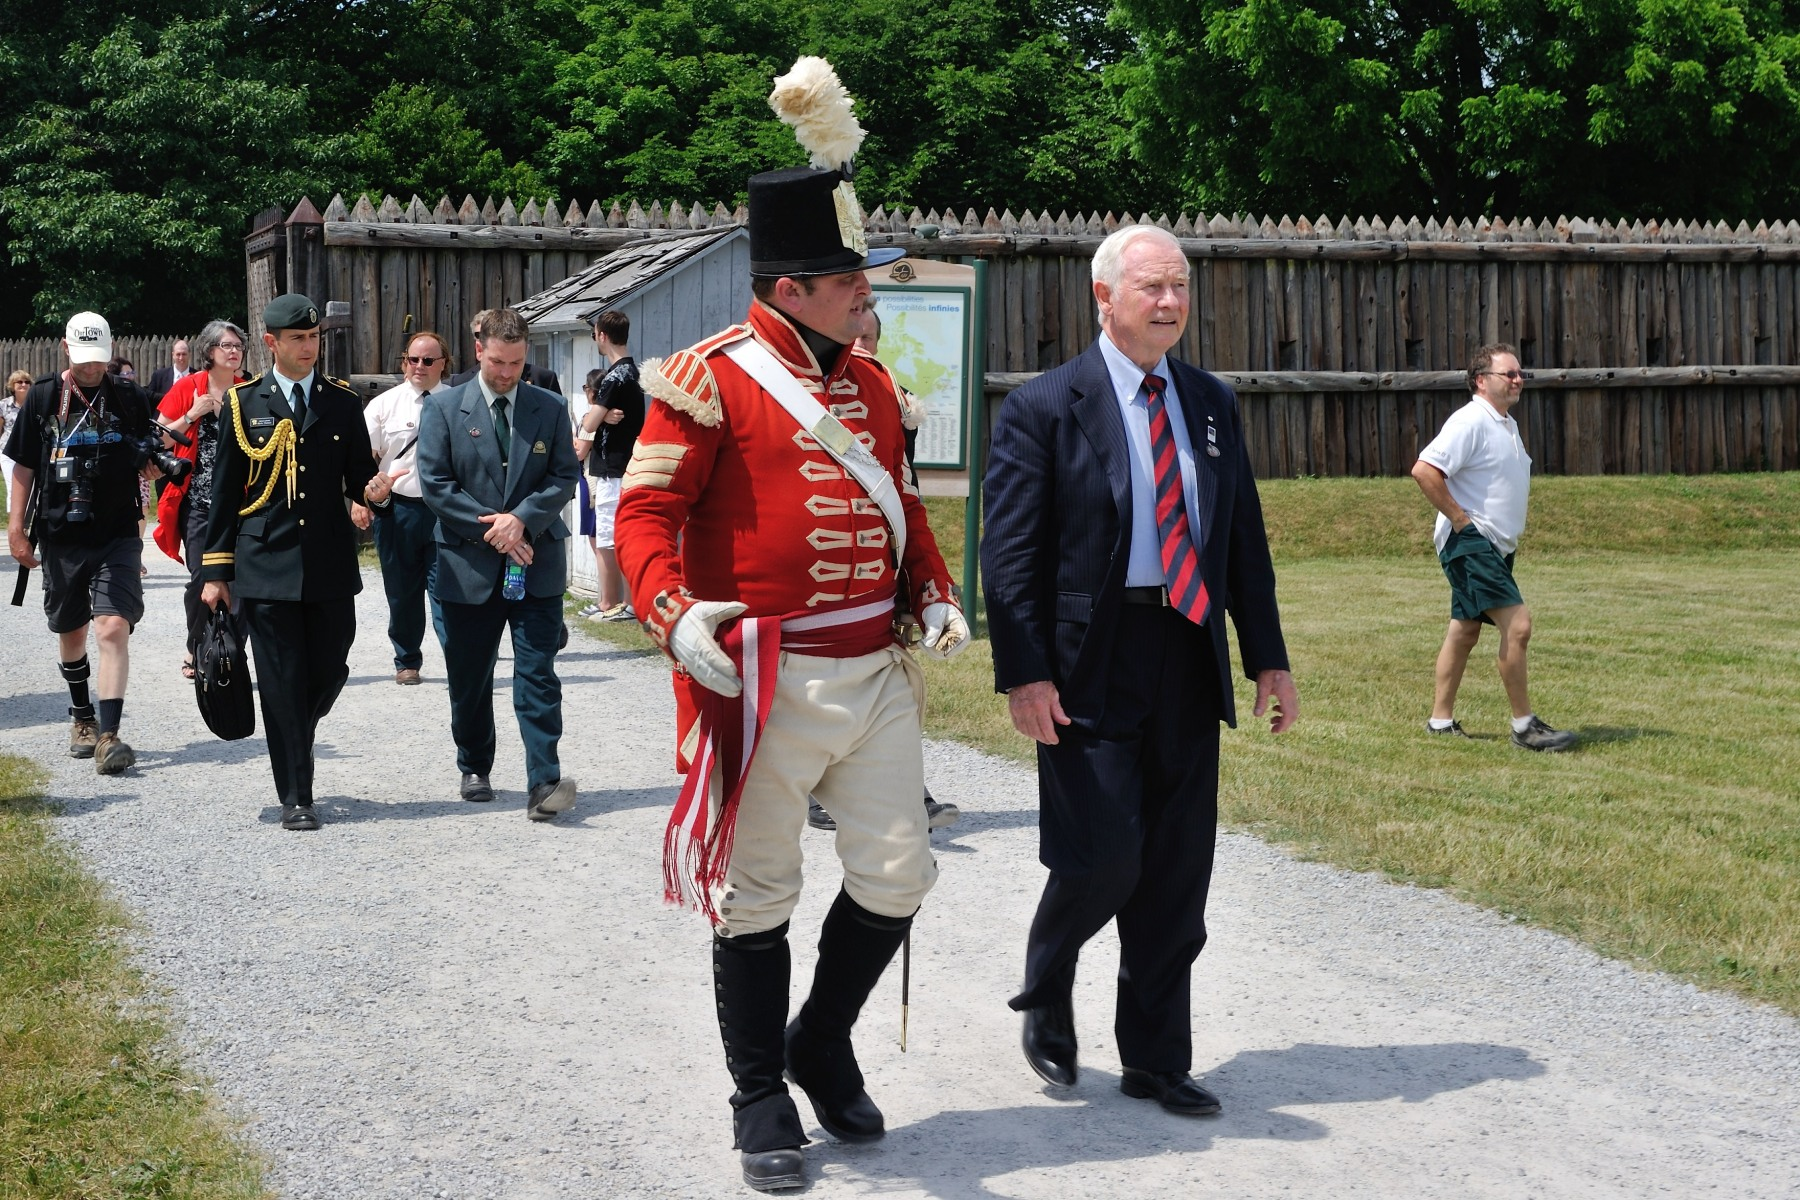 His Excellency visited the Fort George National Historic Site of Canada, which was constructed across the Niagara River by the British Army to protect their interests in Upper Canada.